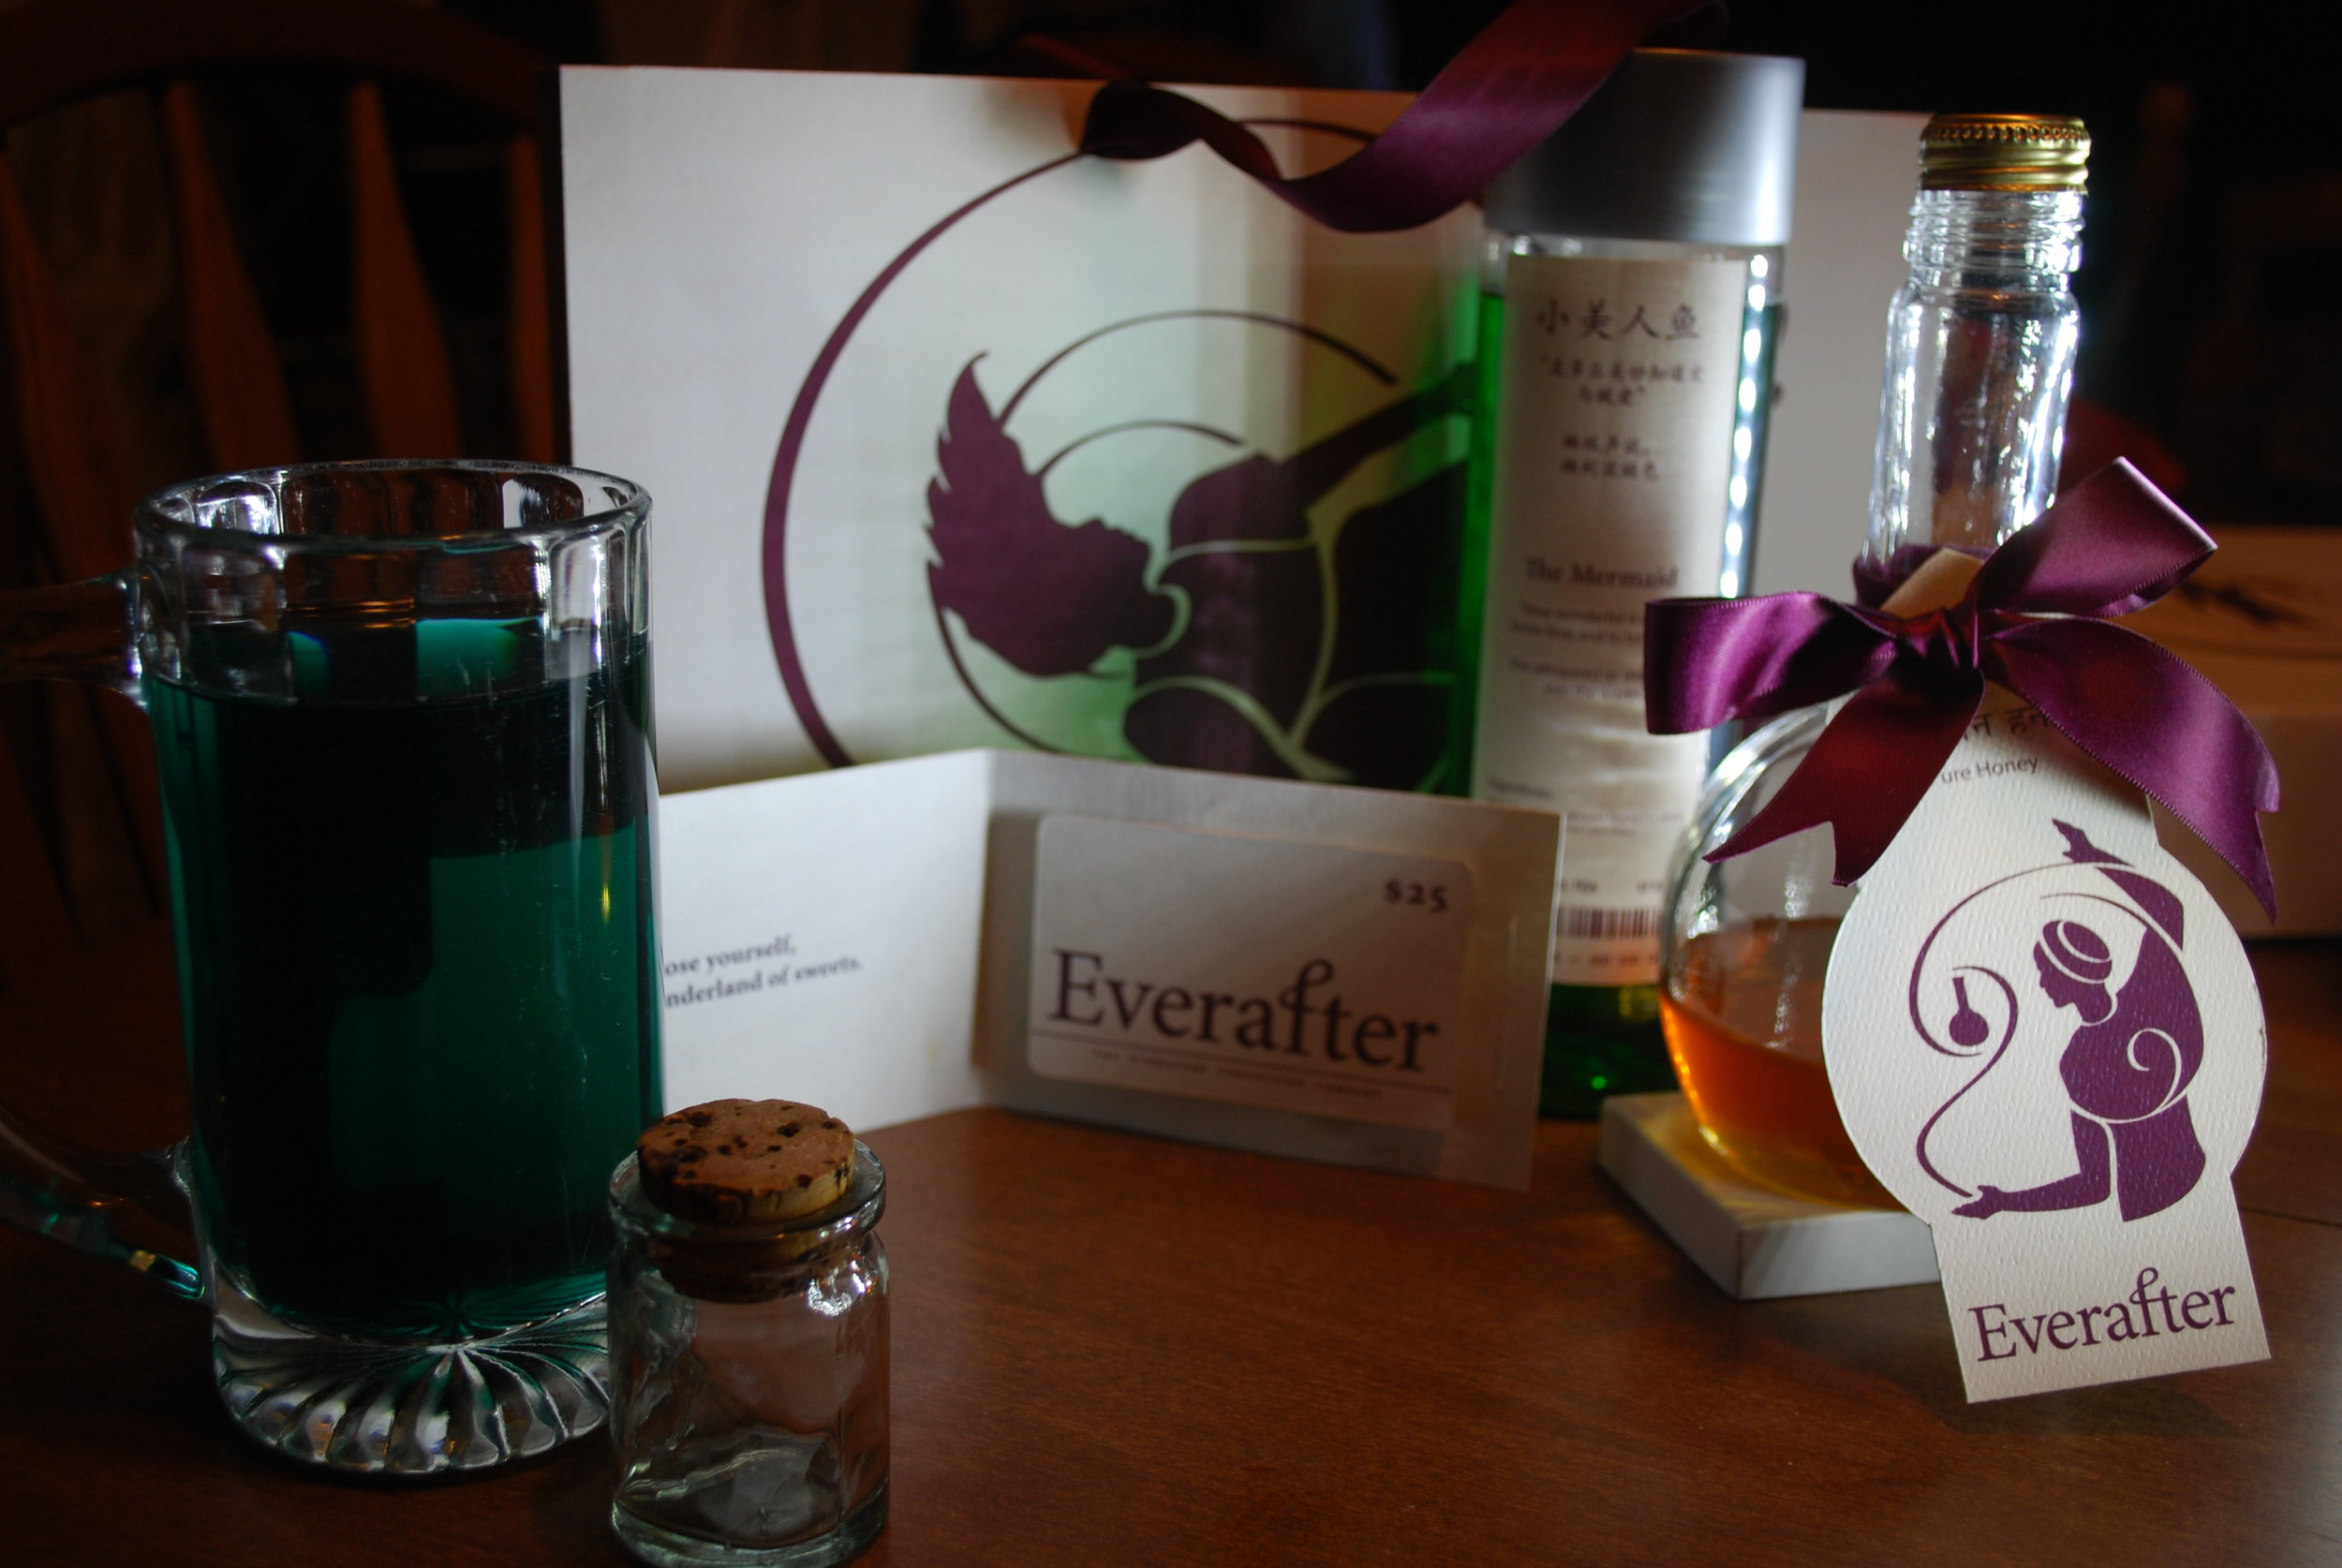 The Everafter Confection Company Brand